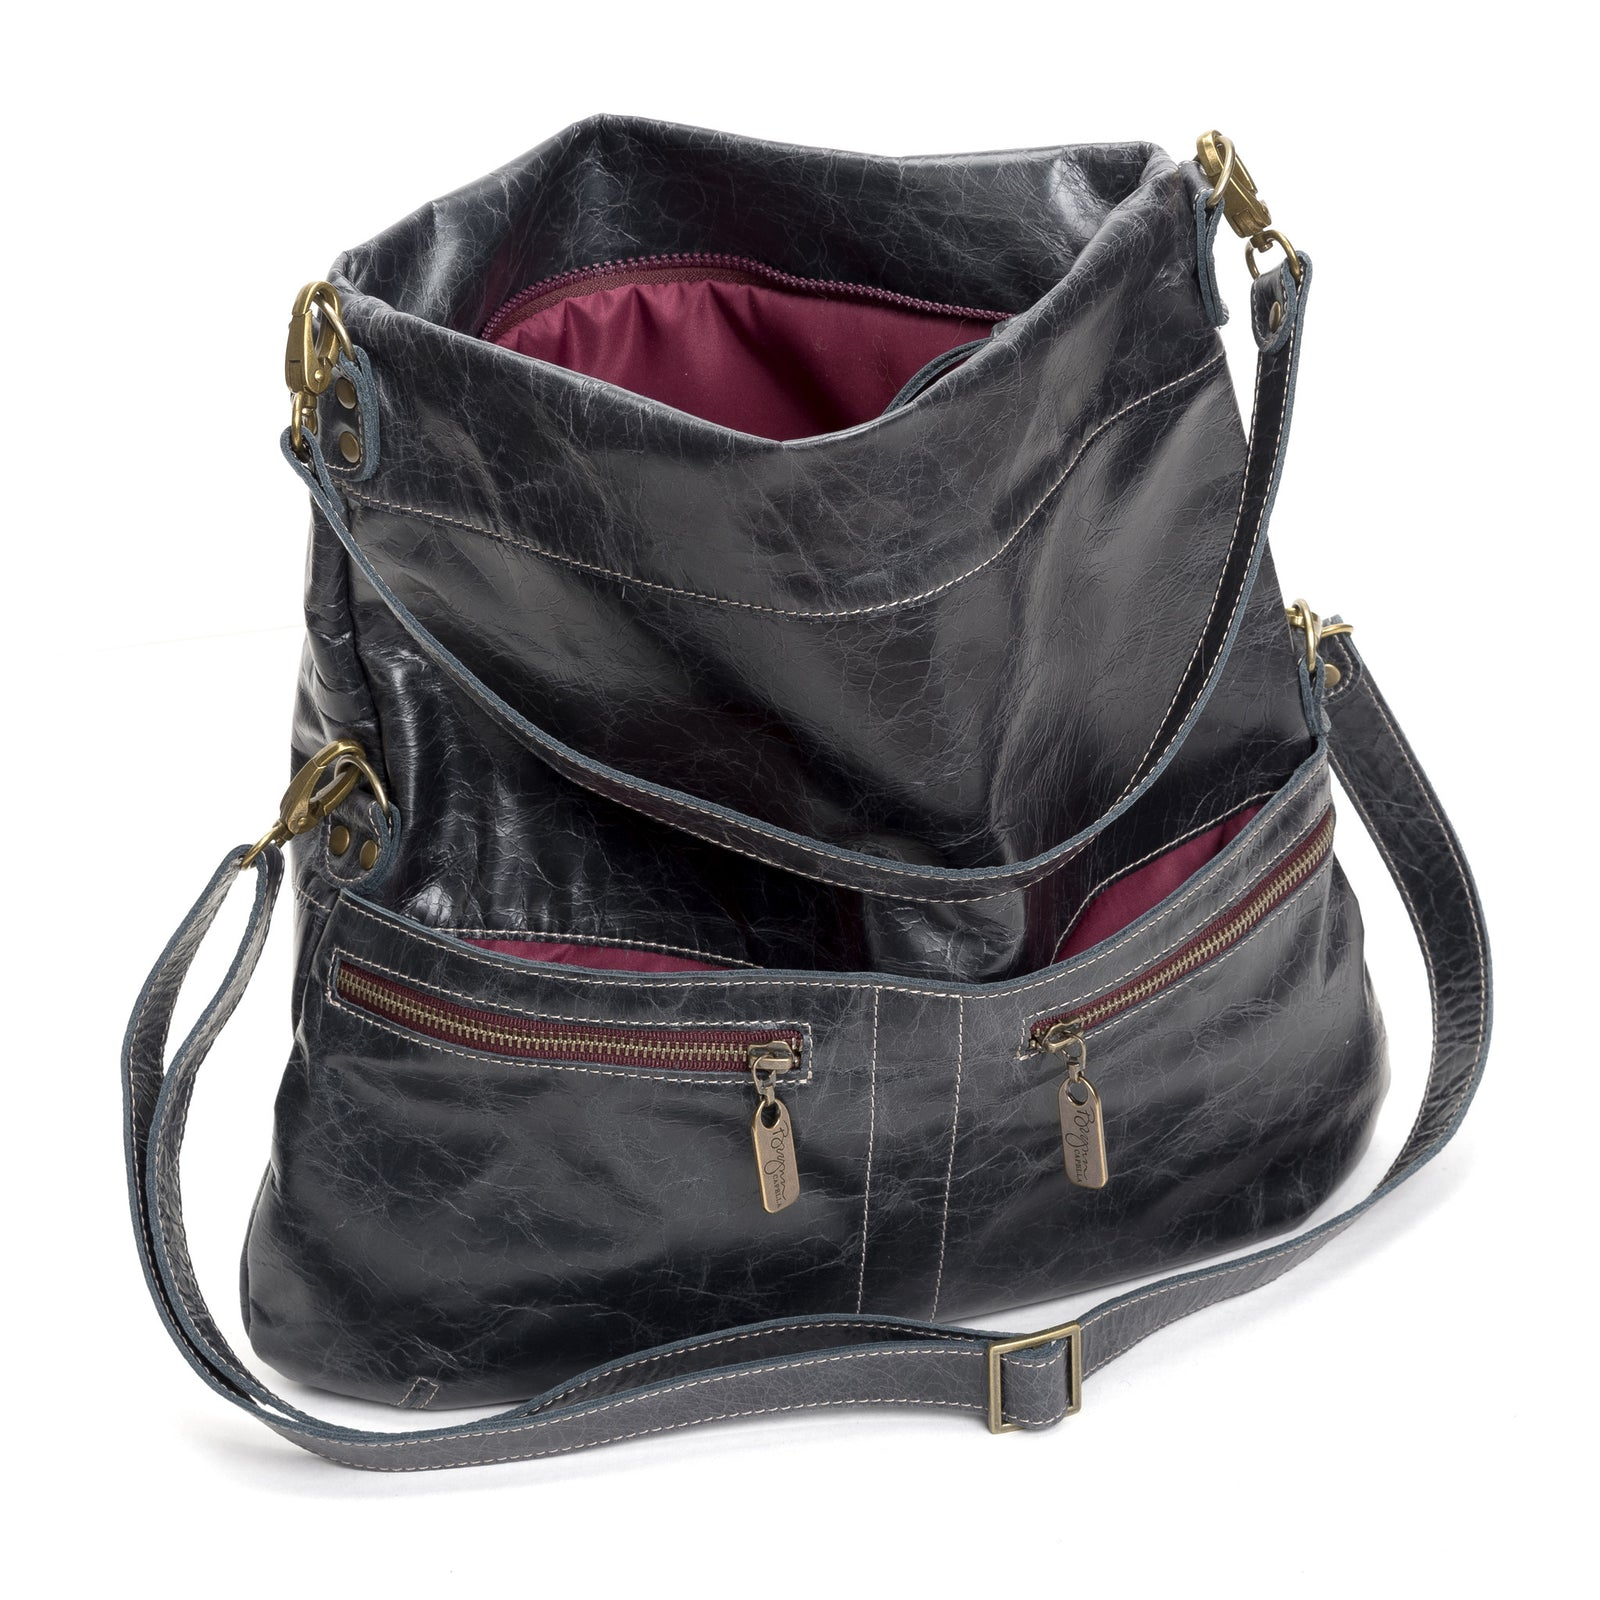 Lauren Crossbody - Panther - Brynn Capella, Large Crossbody